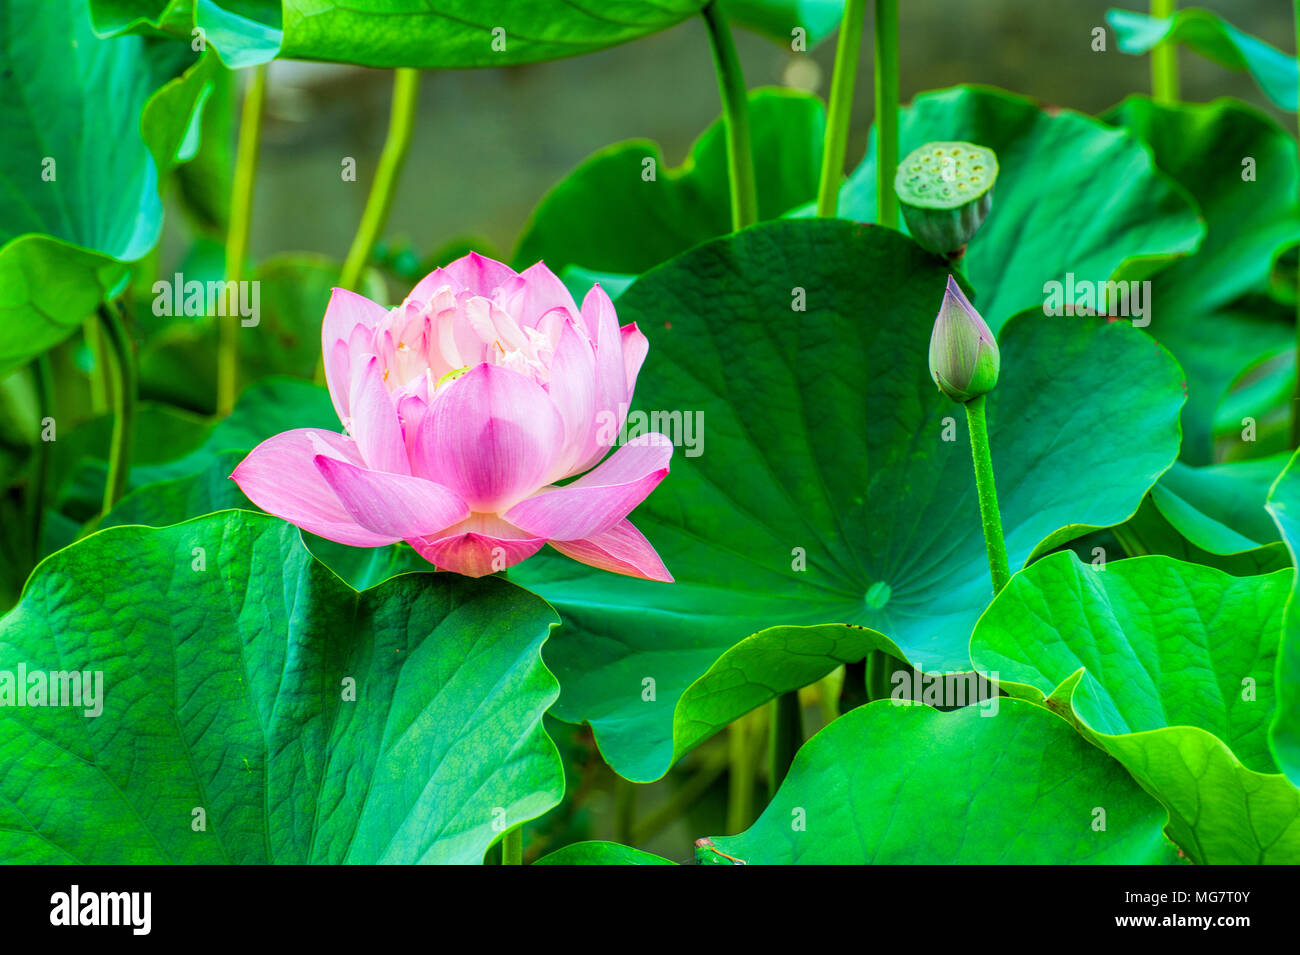 Closeup of a pink lotus flower surrounded by large green lotus closeup of a pink lotus flower surrounded by large green lotus leaves izmirmasajfo